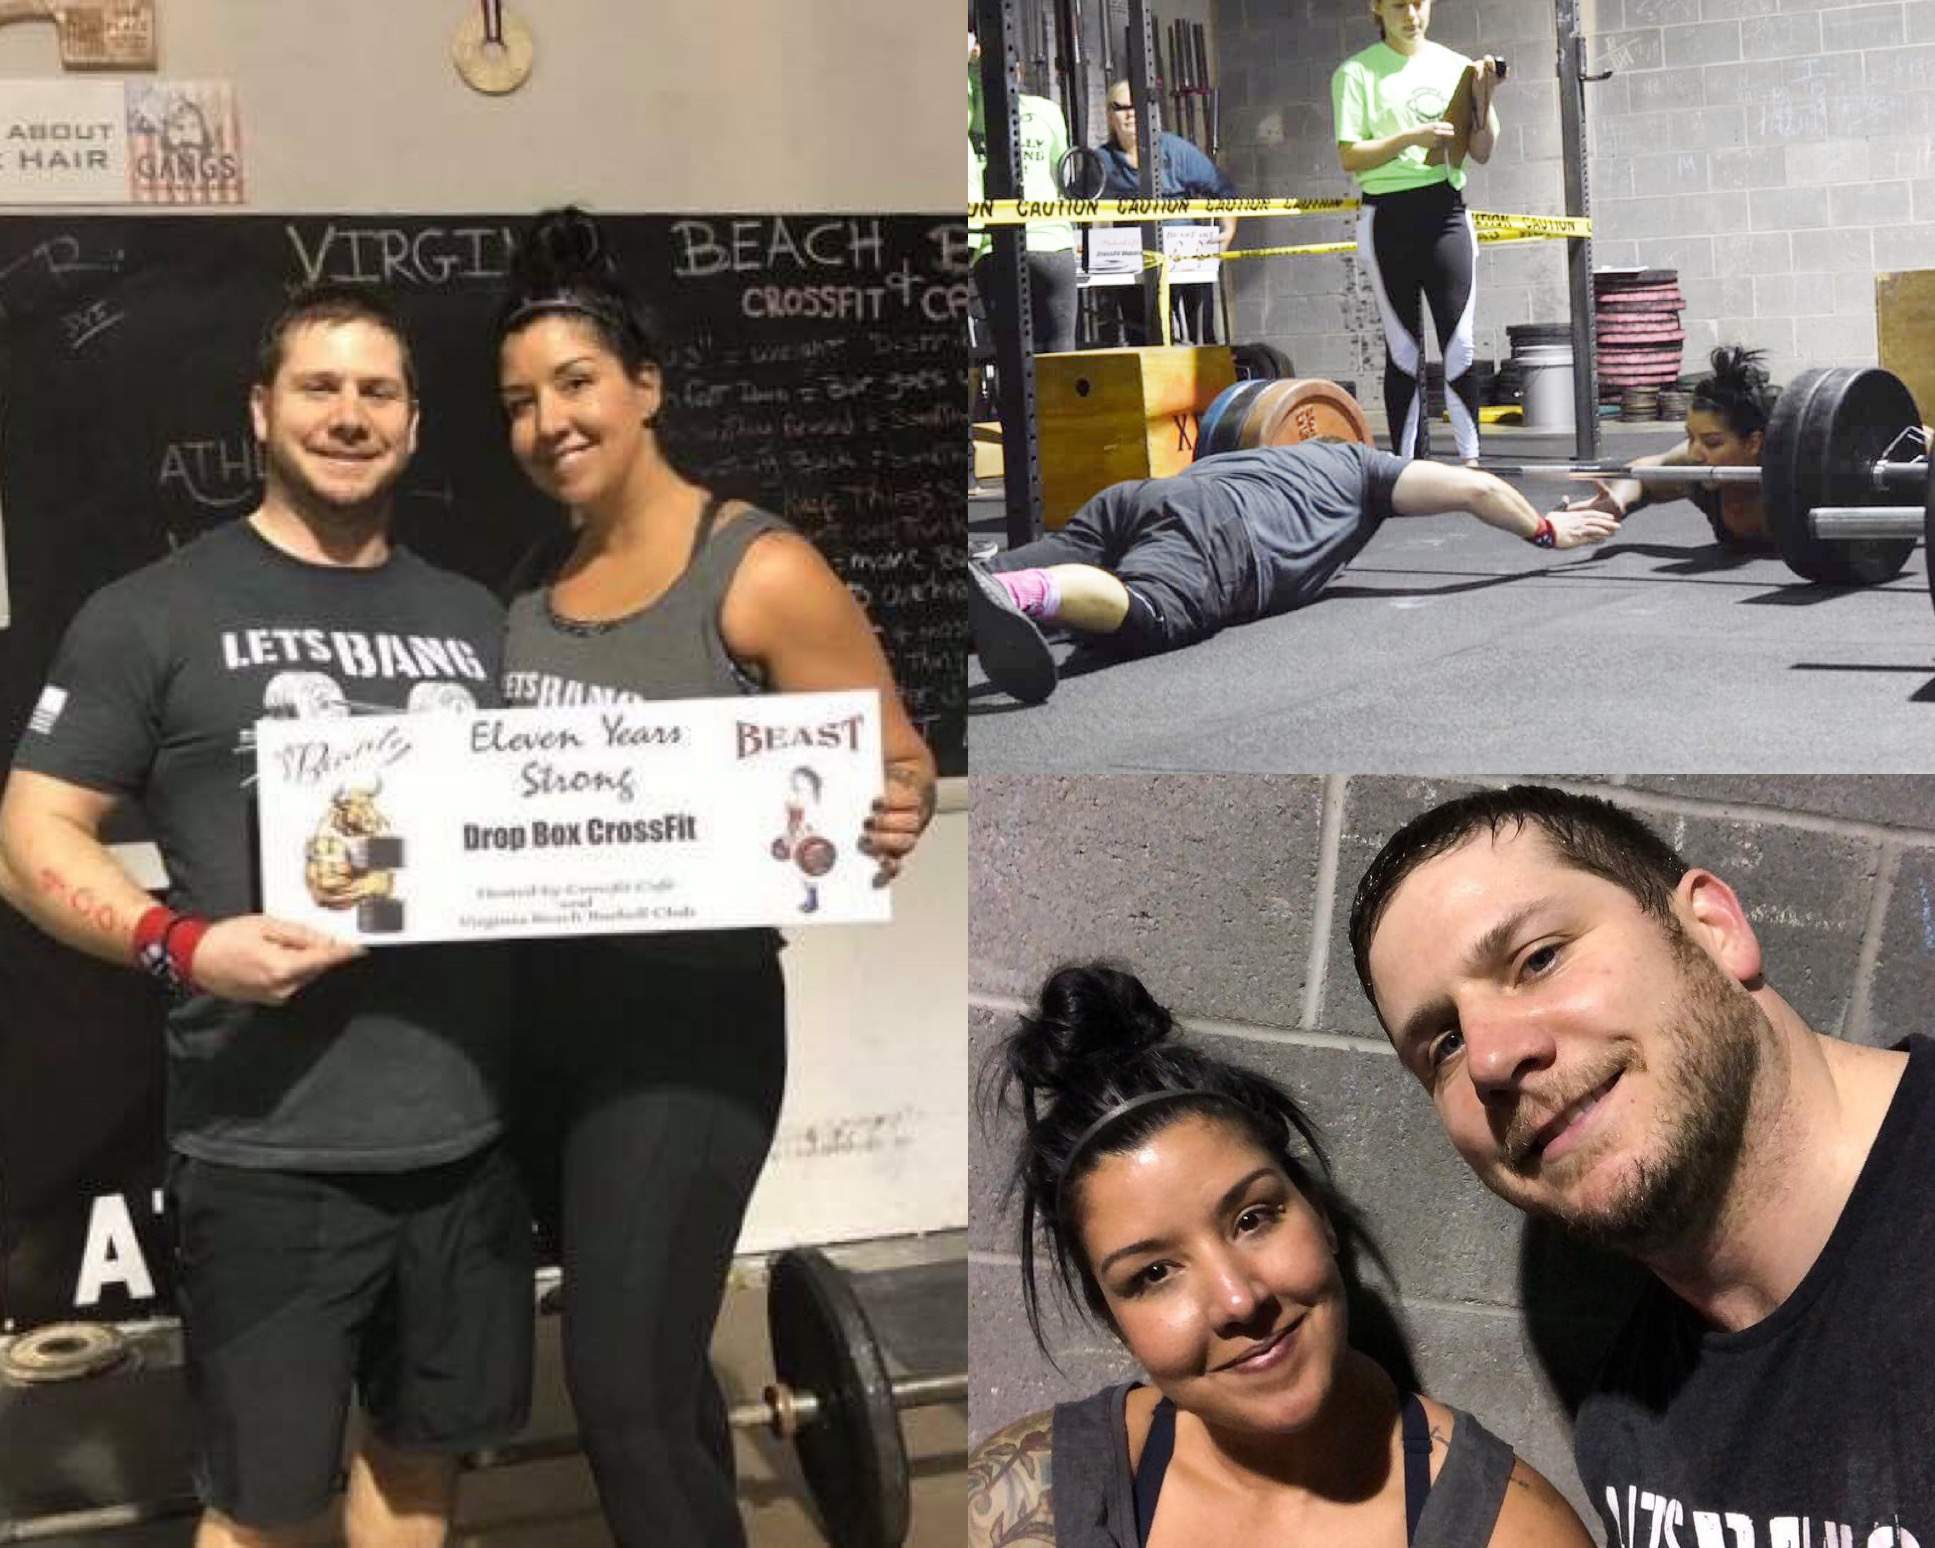 Marie & Dave competed together as a couple for the Beauty & the Beast comp '19